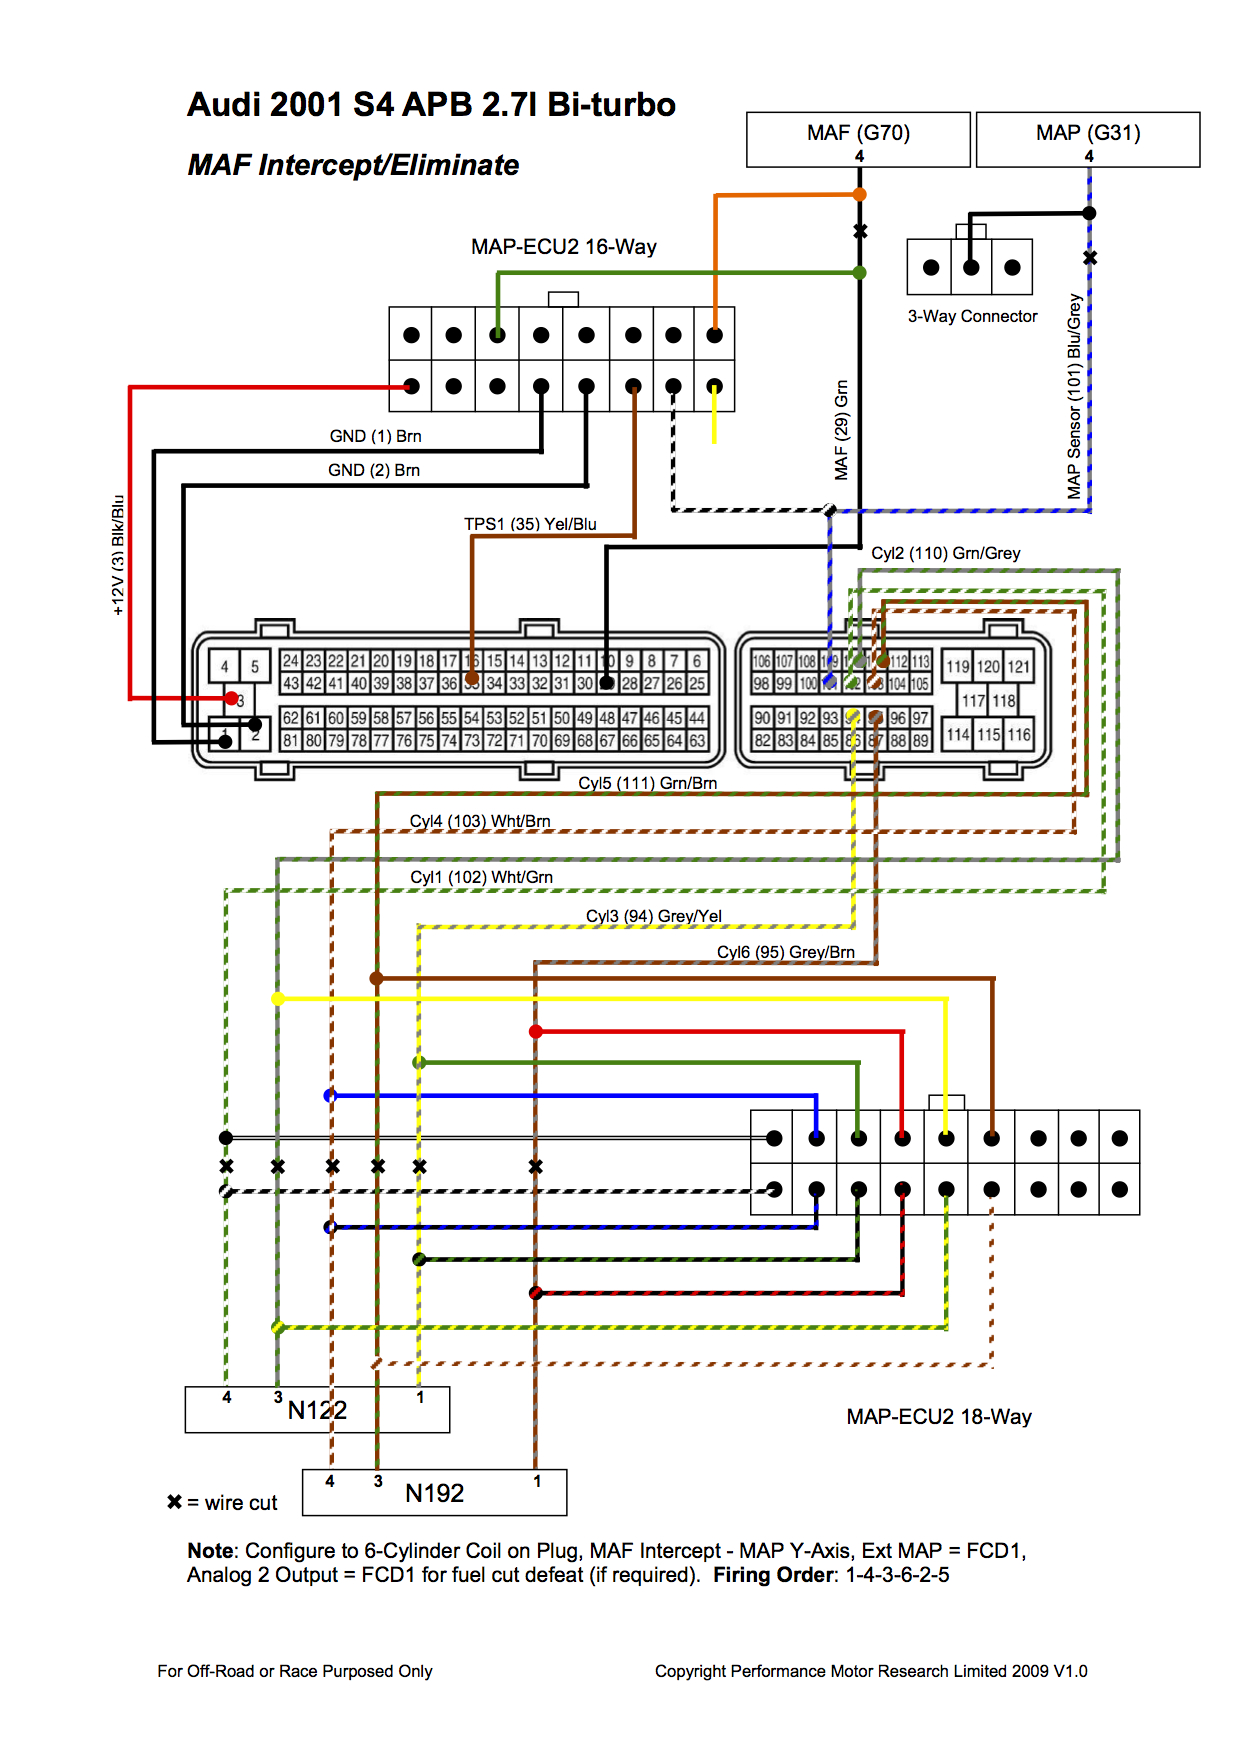 Audi S on 1998 Volvo S70 Fuse Box Diagram